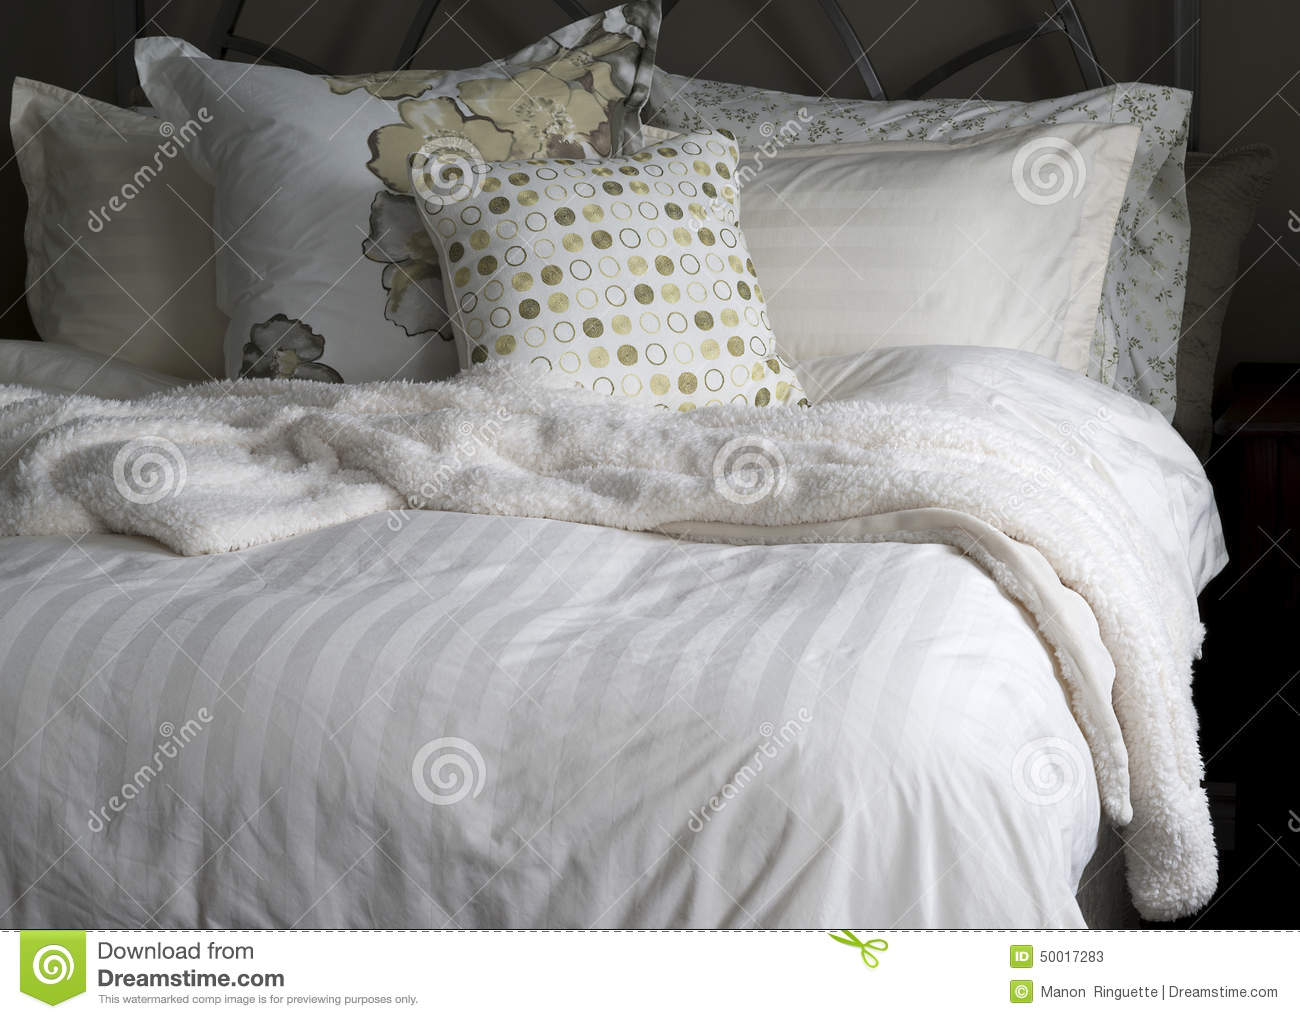 cozy bed linens stock image image of pillows sanctuary 50017283